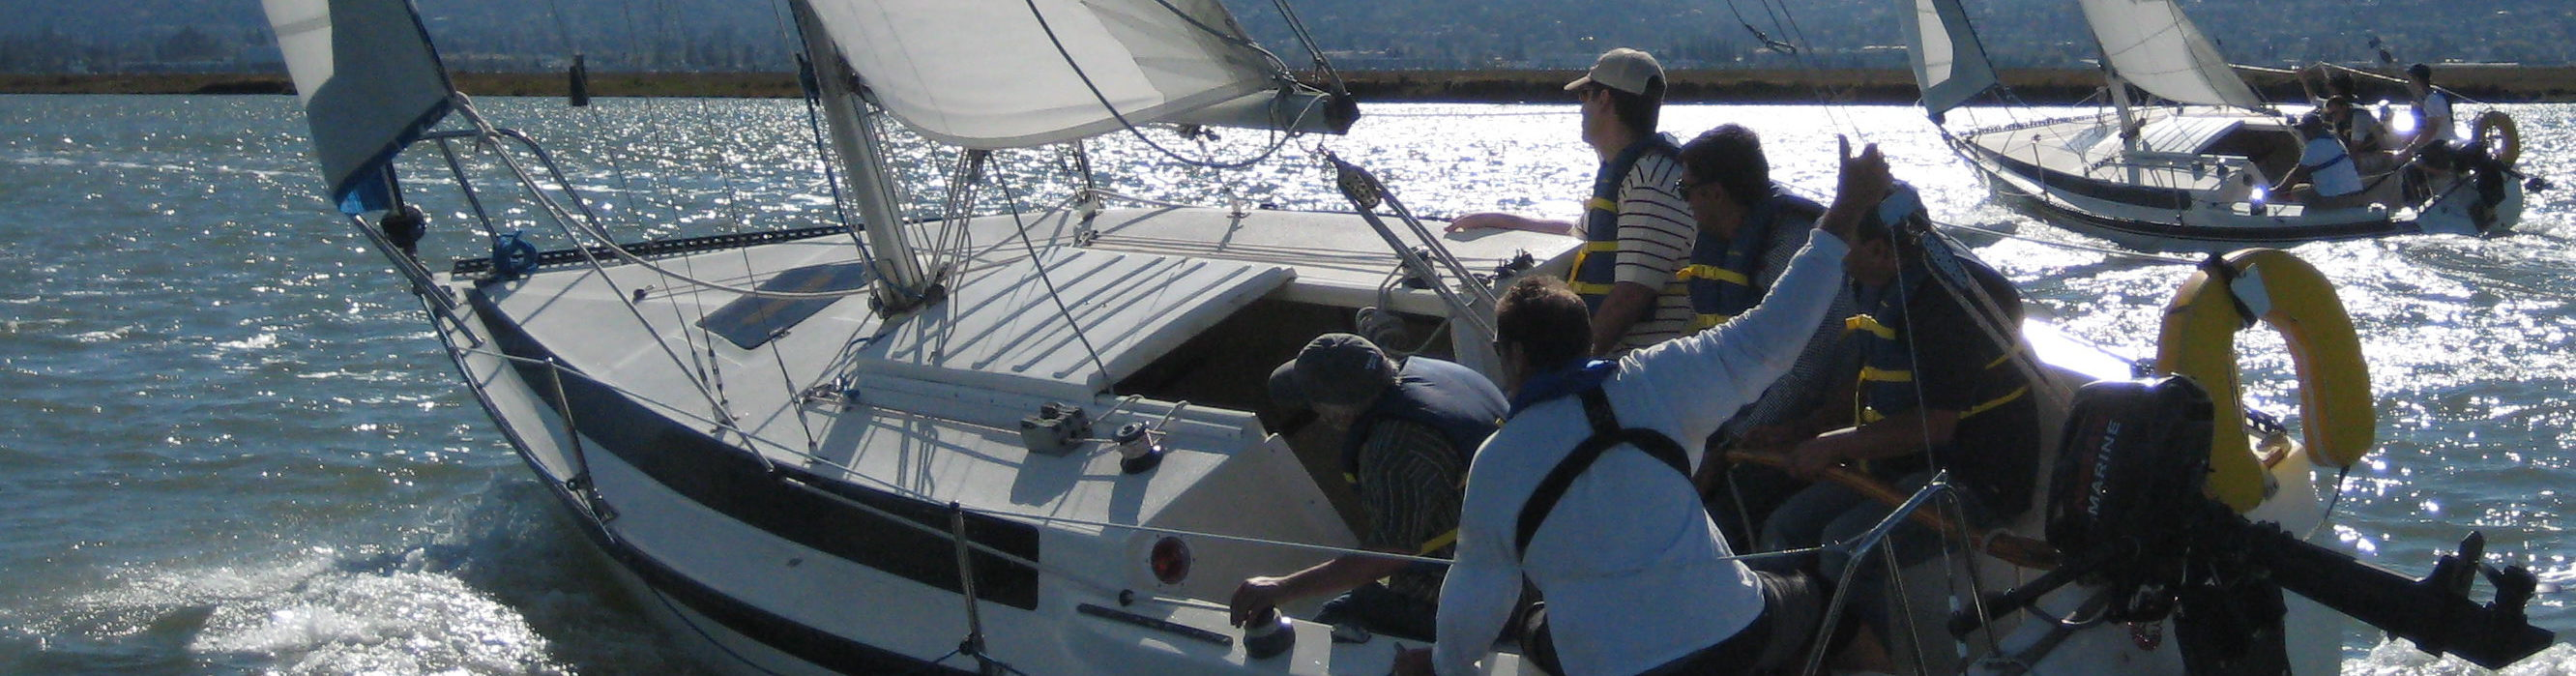 Spinnaker Sailing Club Reciprocal Privileges